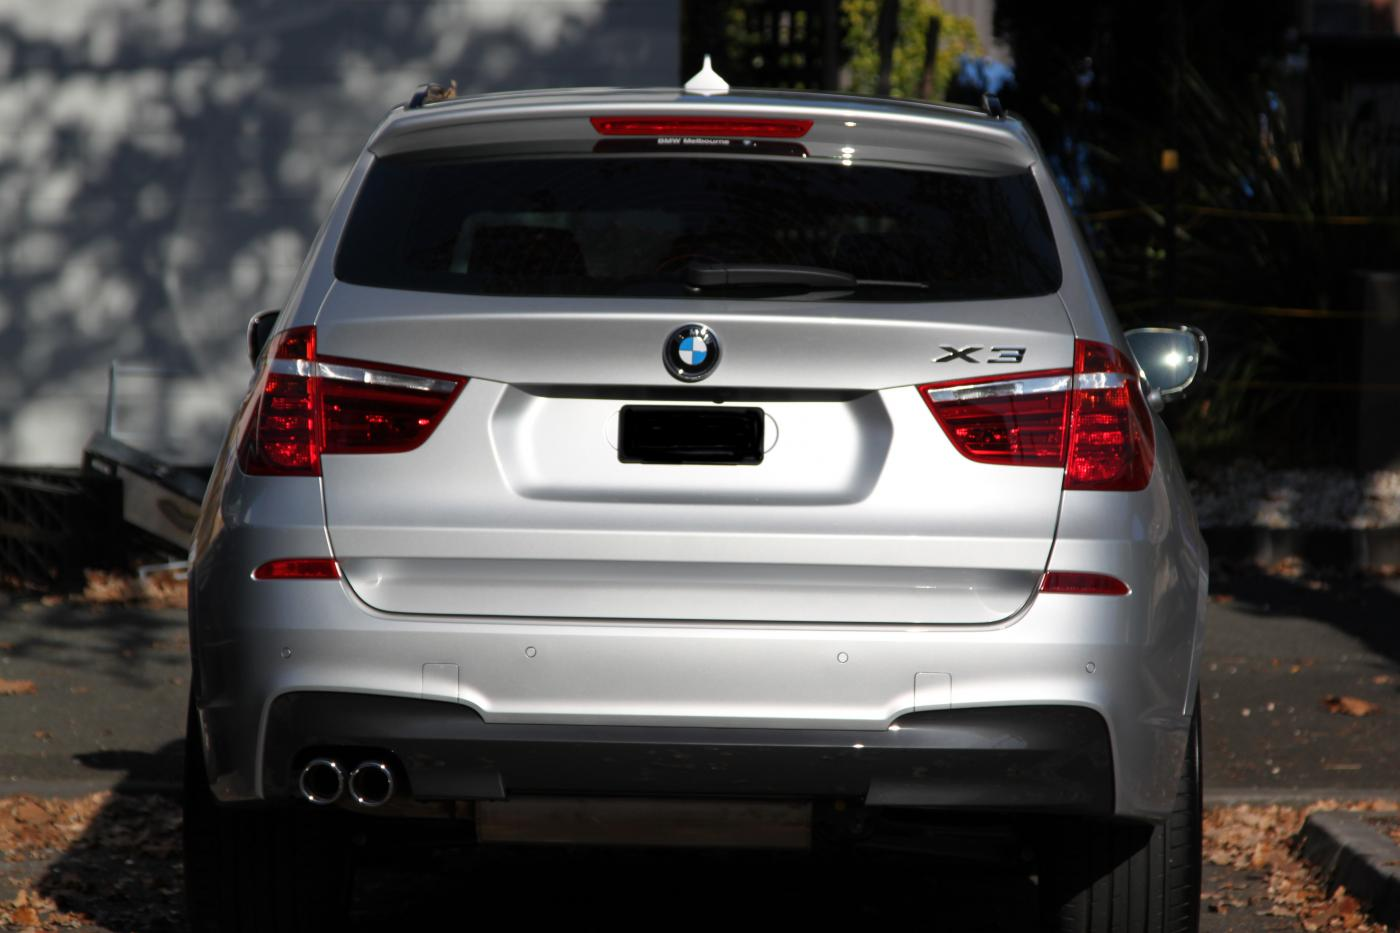 bmw x3 photovideo gallery xbimmers bmw x3 autos weblog. Black Bedroom Furniture Sets. Home Design Ideas